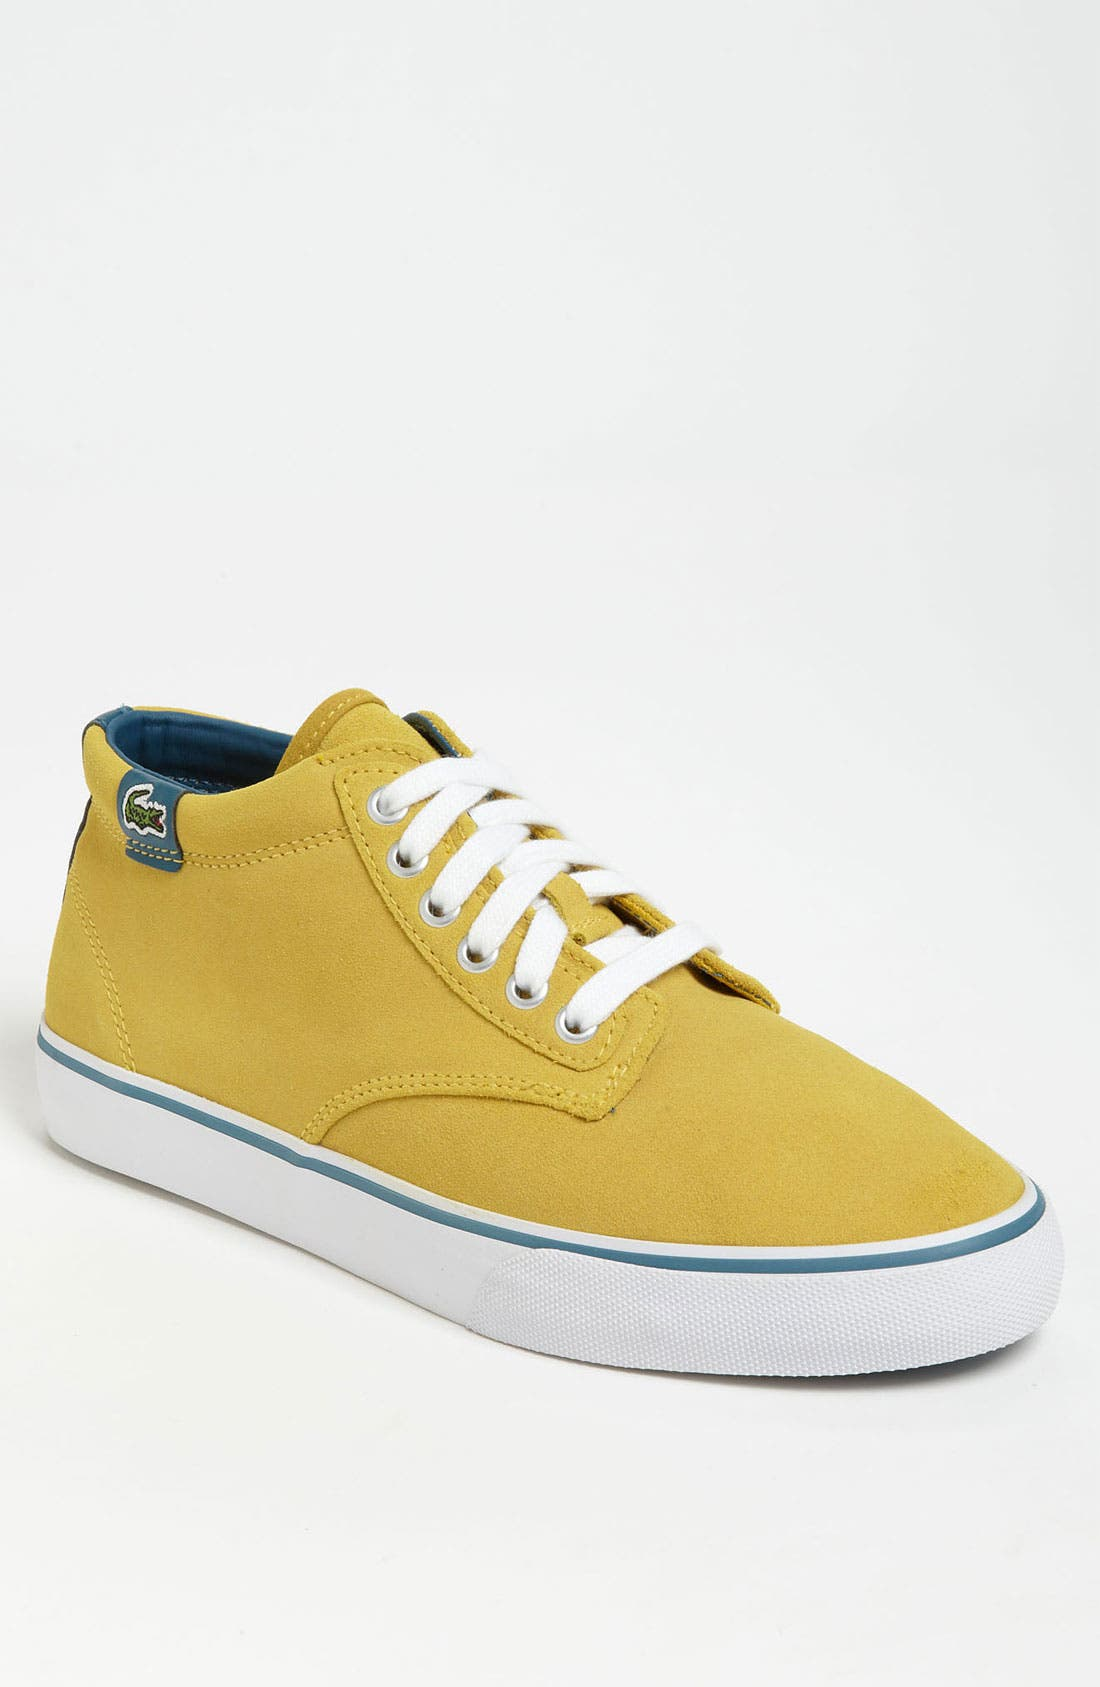 Alternate Image 1 Selected - Lacoste 'Barbados Mid LMS' Sneaker (Online Only)